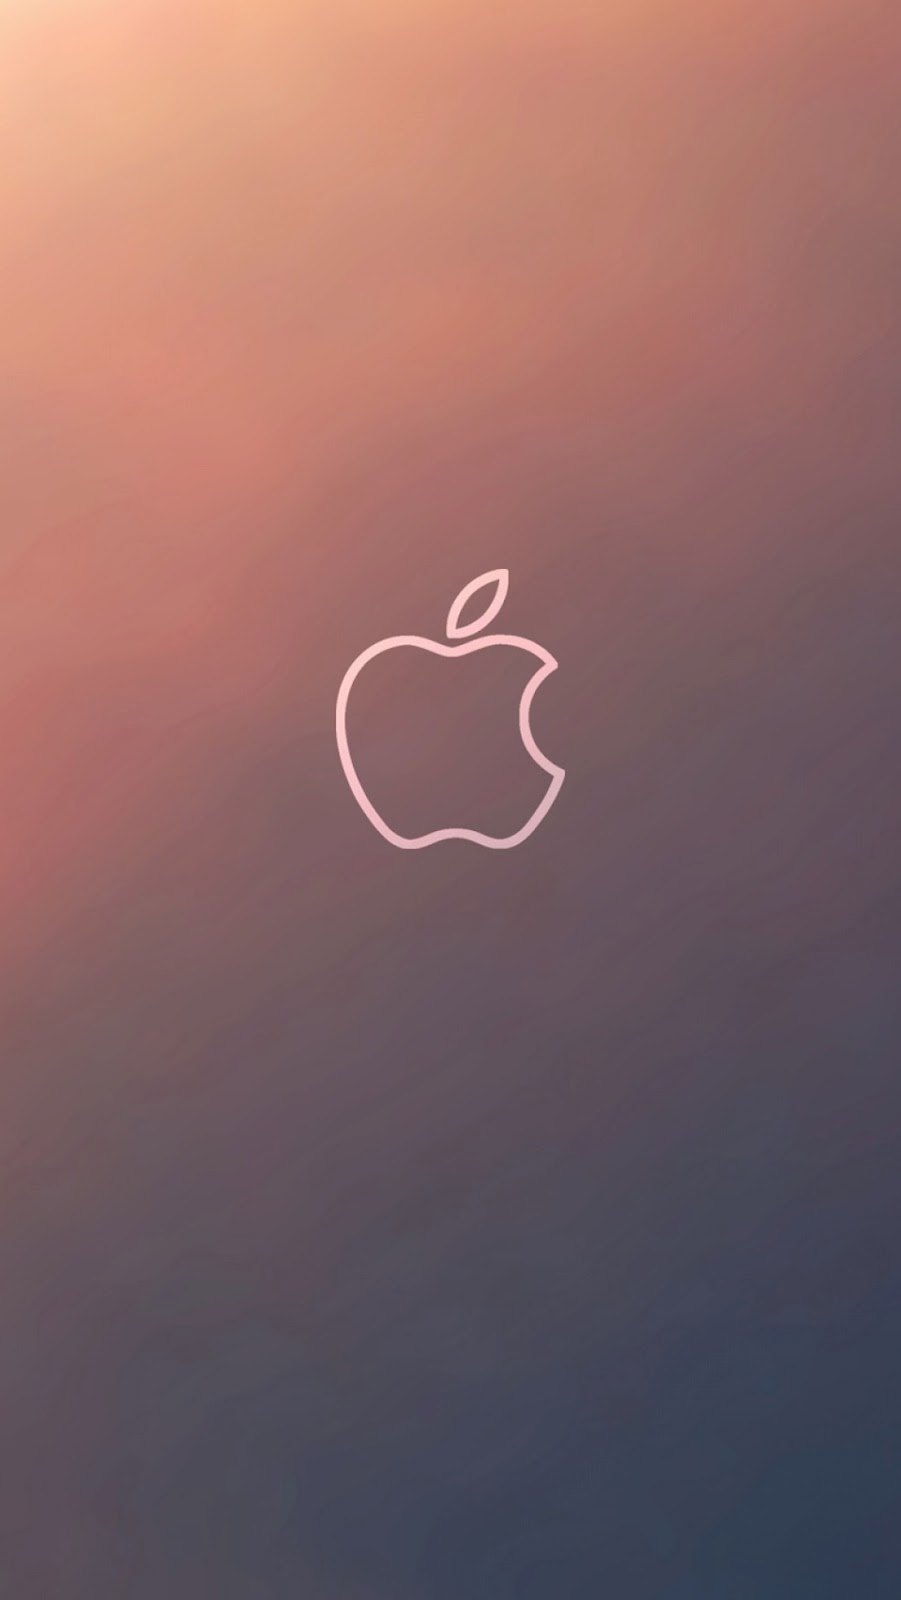 iPhone 6s Simple Apple Logo Wallpaper